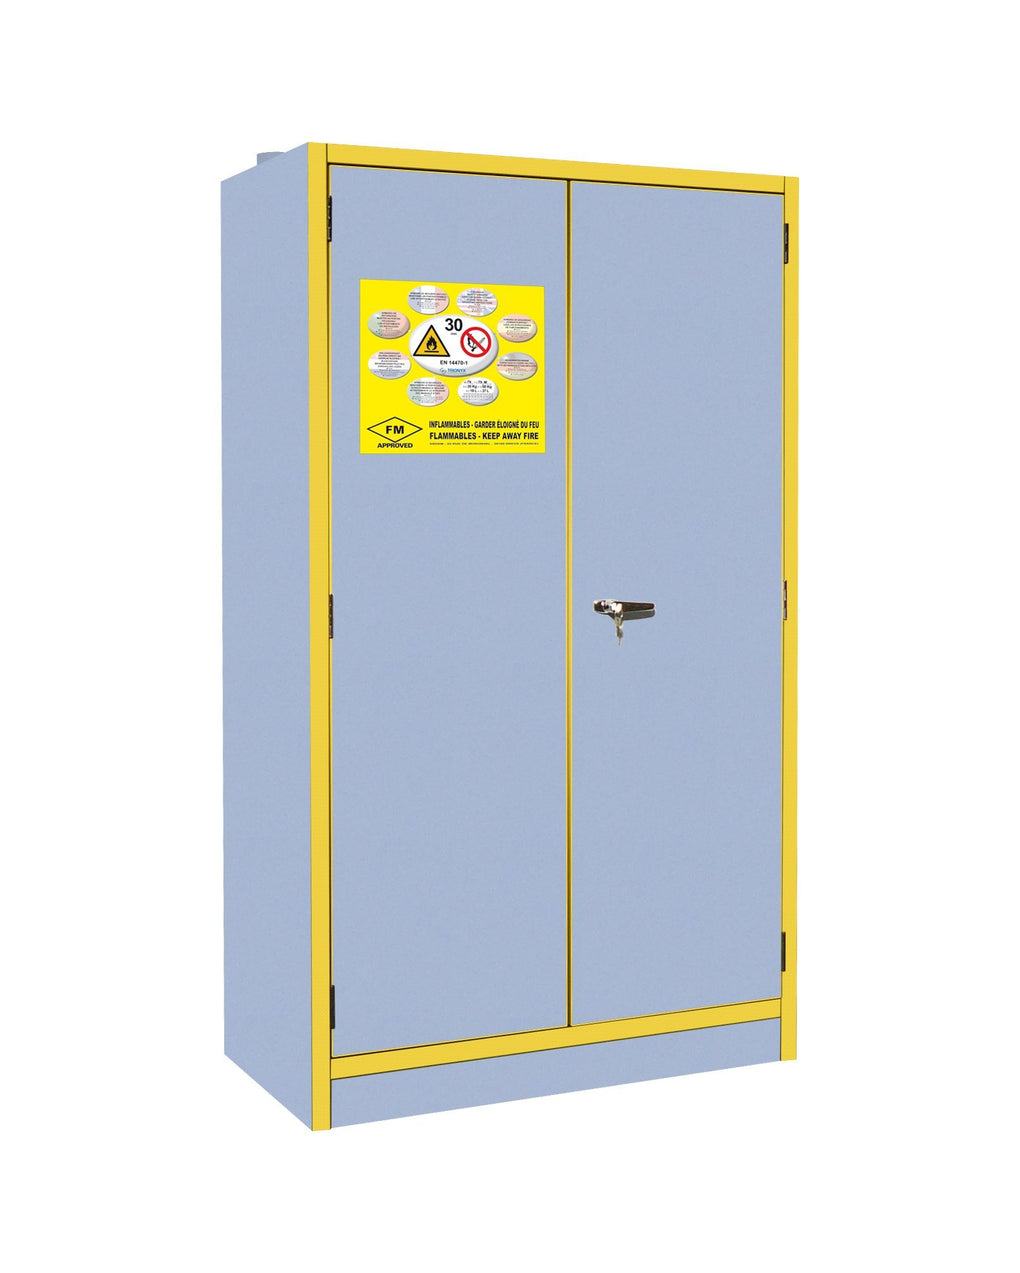 30 Minute 2 Door Fire Rated Cabinet (1980mm High) - 3035E|| 2 Doors